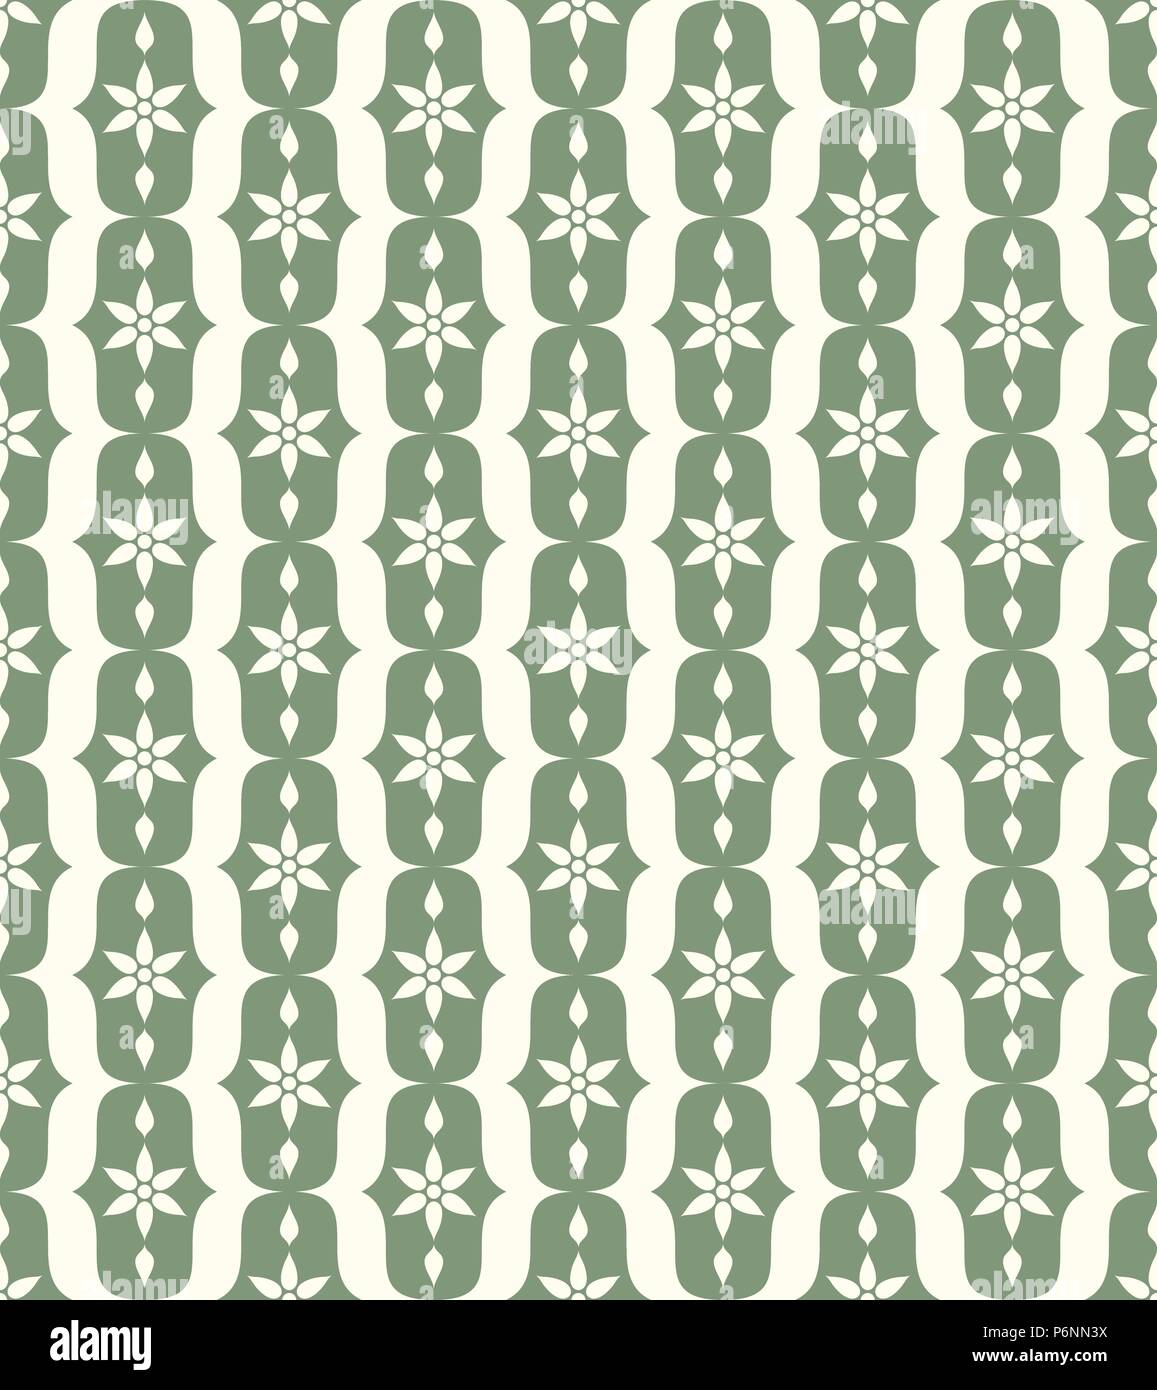 Green vintage blossom and lobe pattern on pastel background. Retro bloom seamless pattern for ancient or old design - Stock Vector